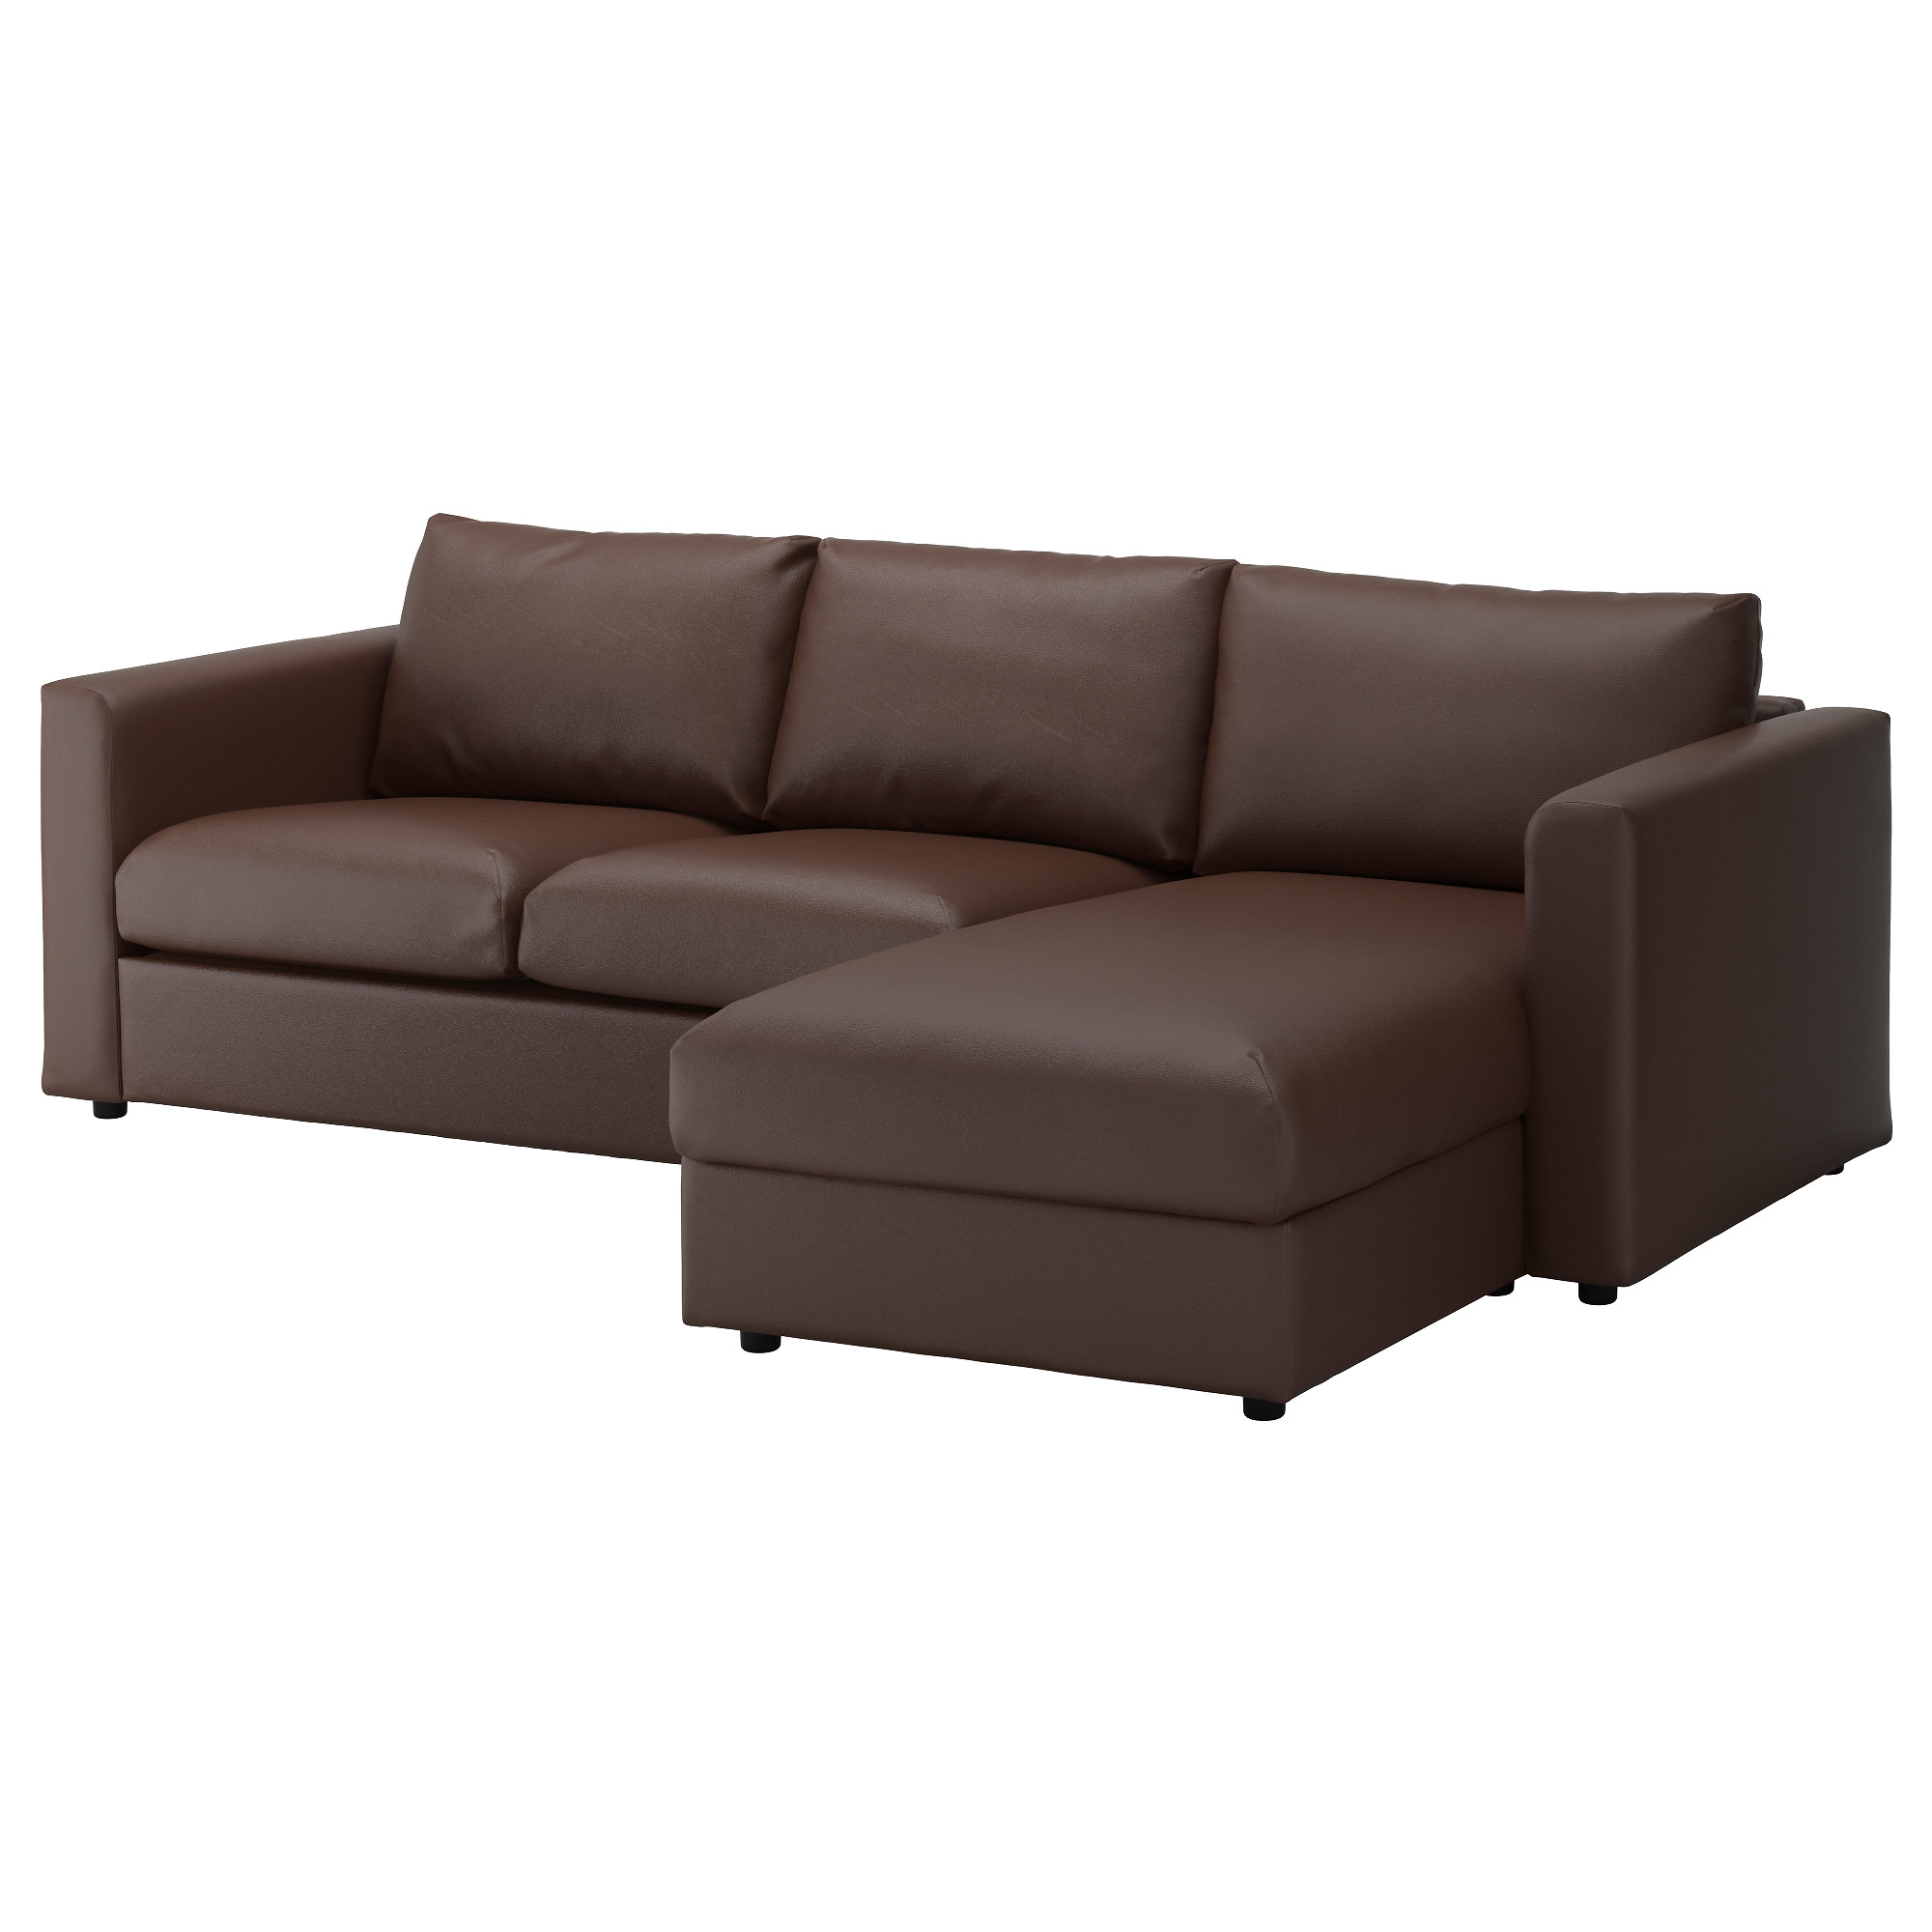 Sofa VIMLE with chaise, Farsta dark brown